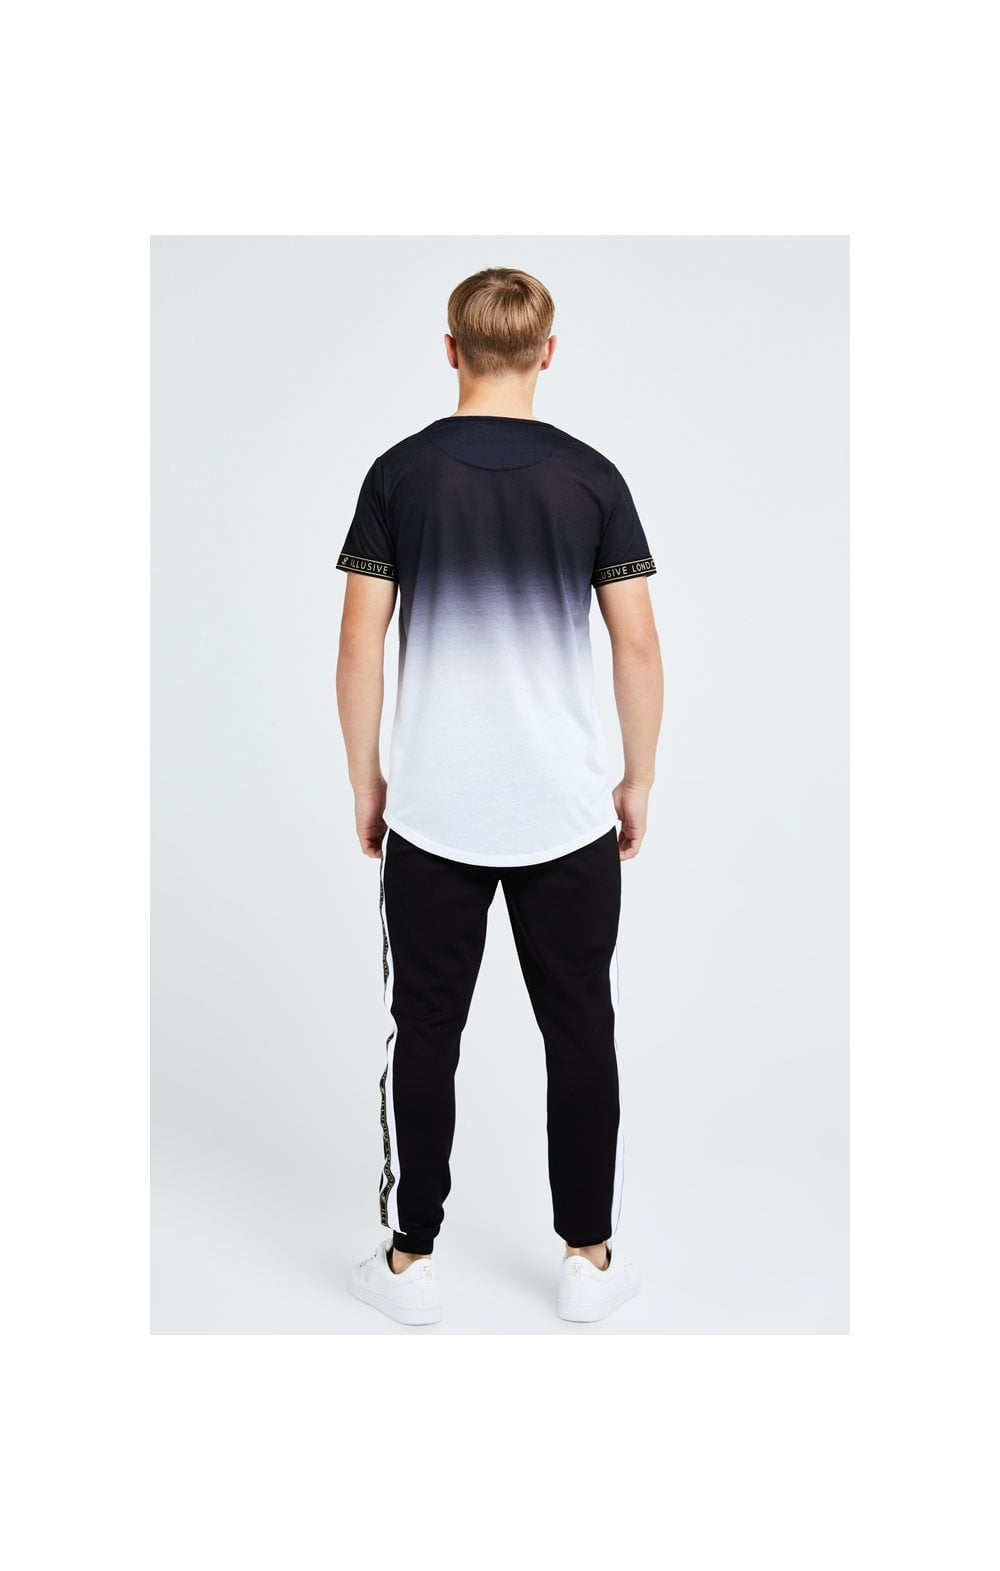 Load image into Gallery viewer, Illusive London Diverge Fade Tech Tee - Black Gold & White (4)